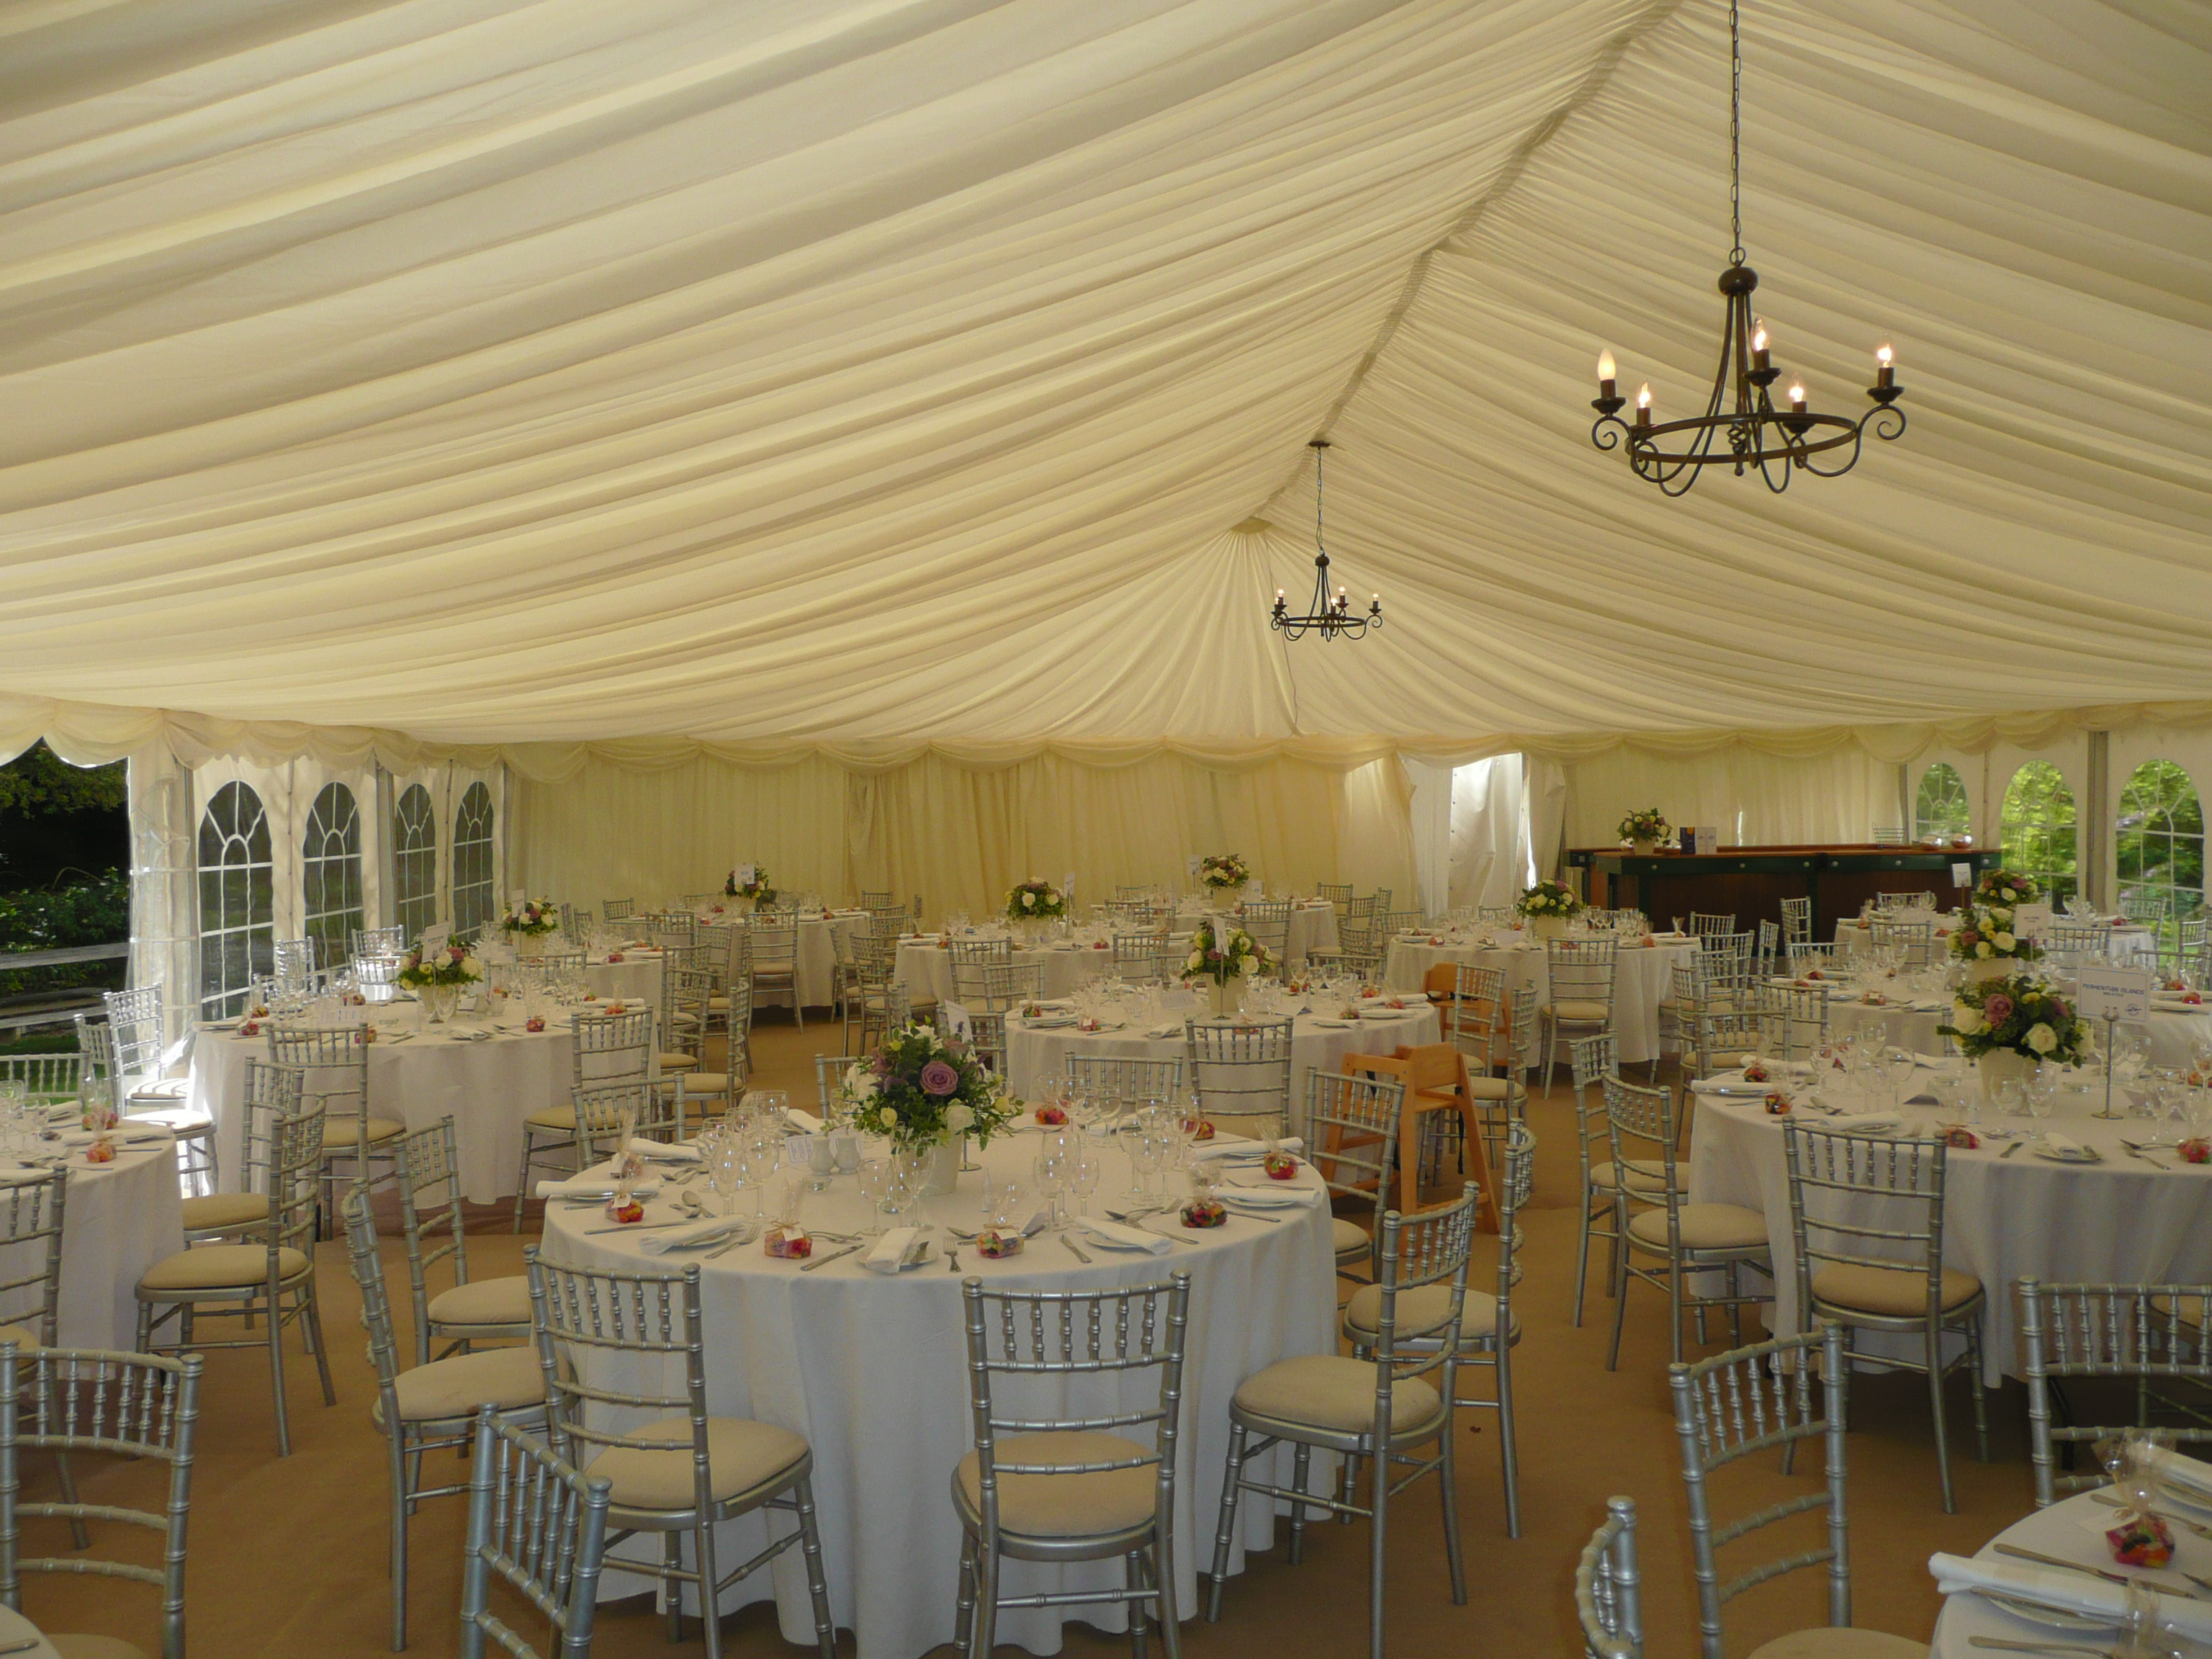 Planning Your Wedding Reception In A Marquee